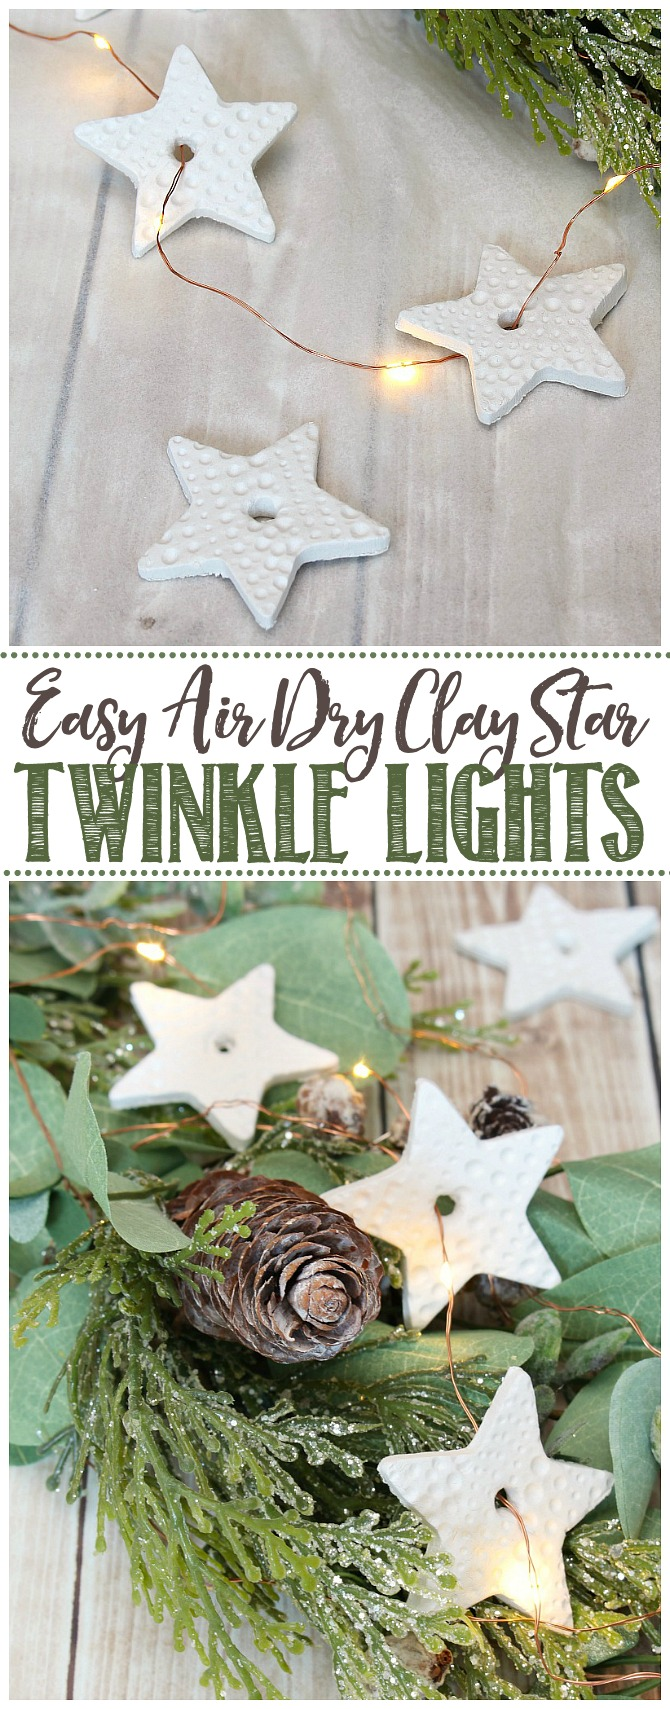 Air dry clay star lights added to a Christmas garland.